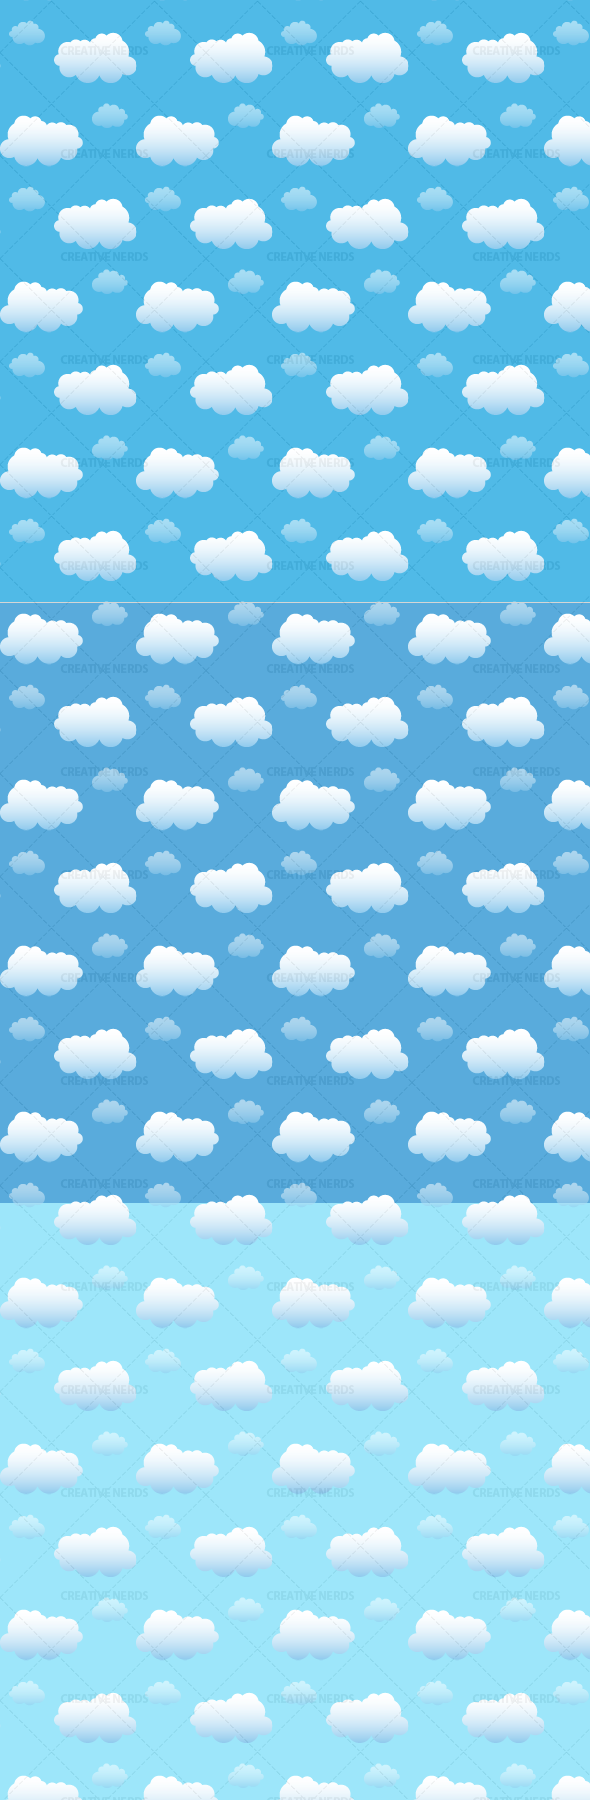 clound water marked pattern Beautiful Cloud Seamless Vector Pattern